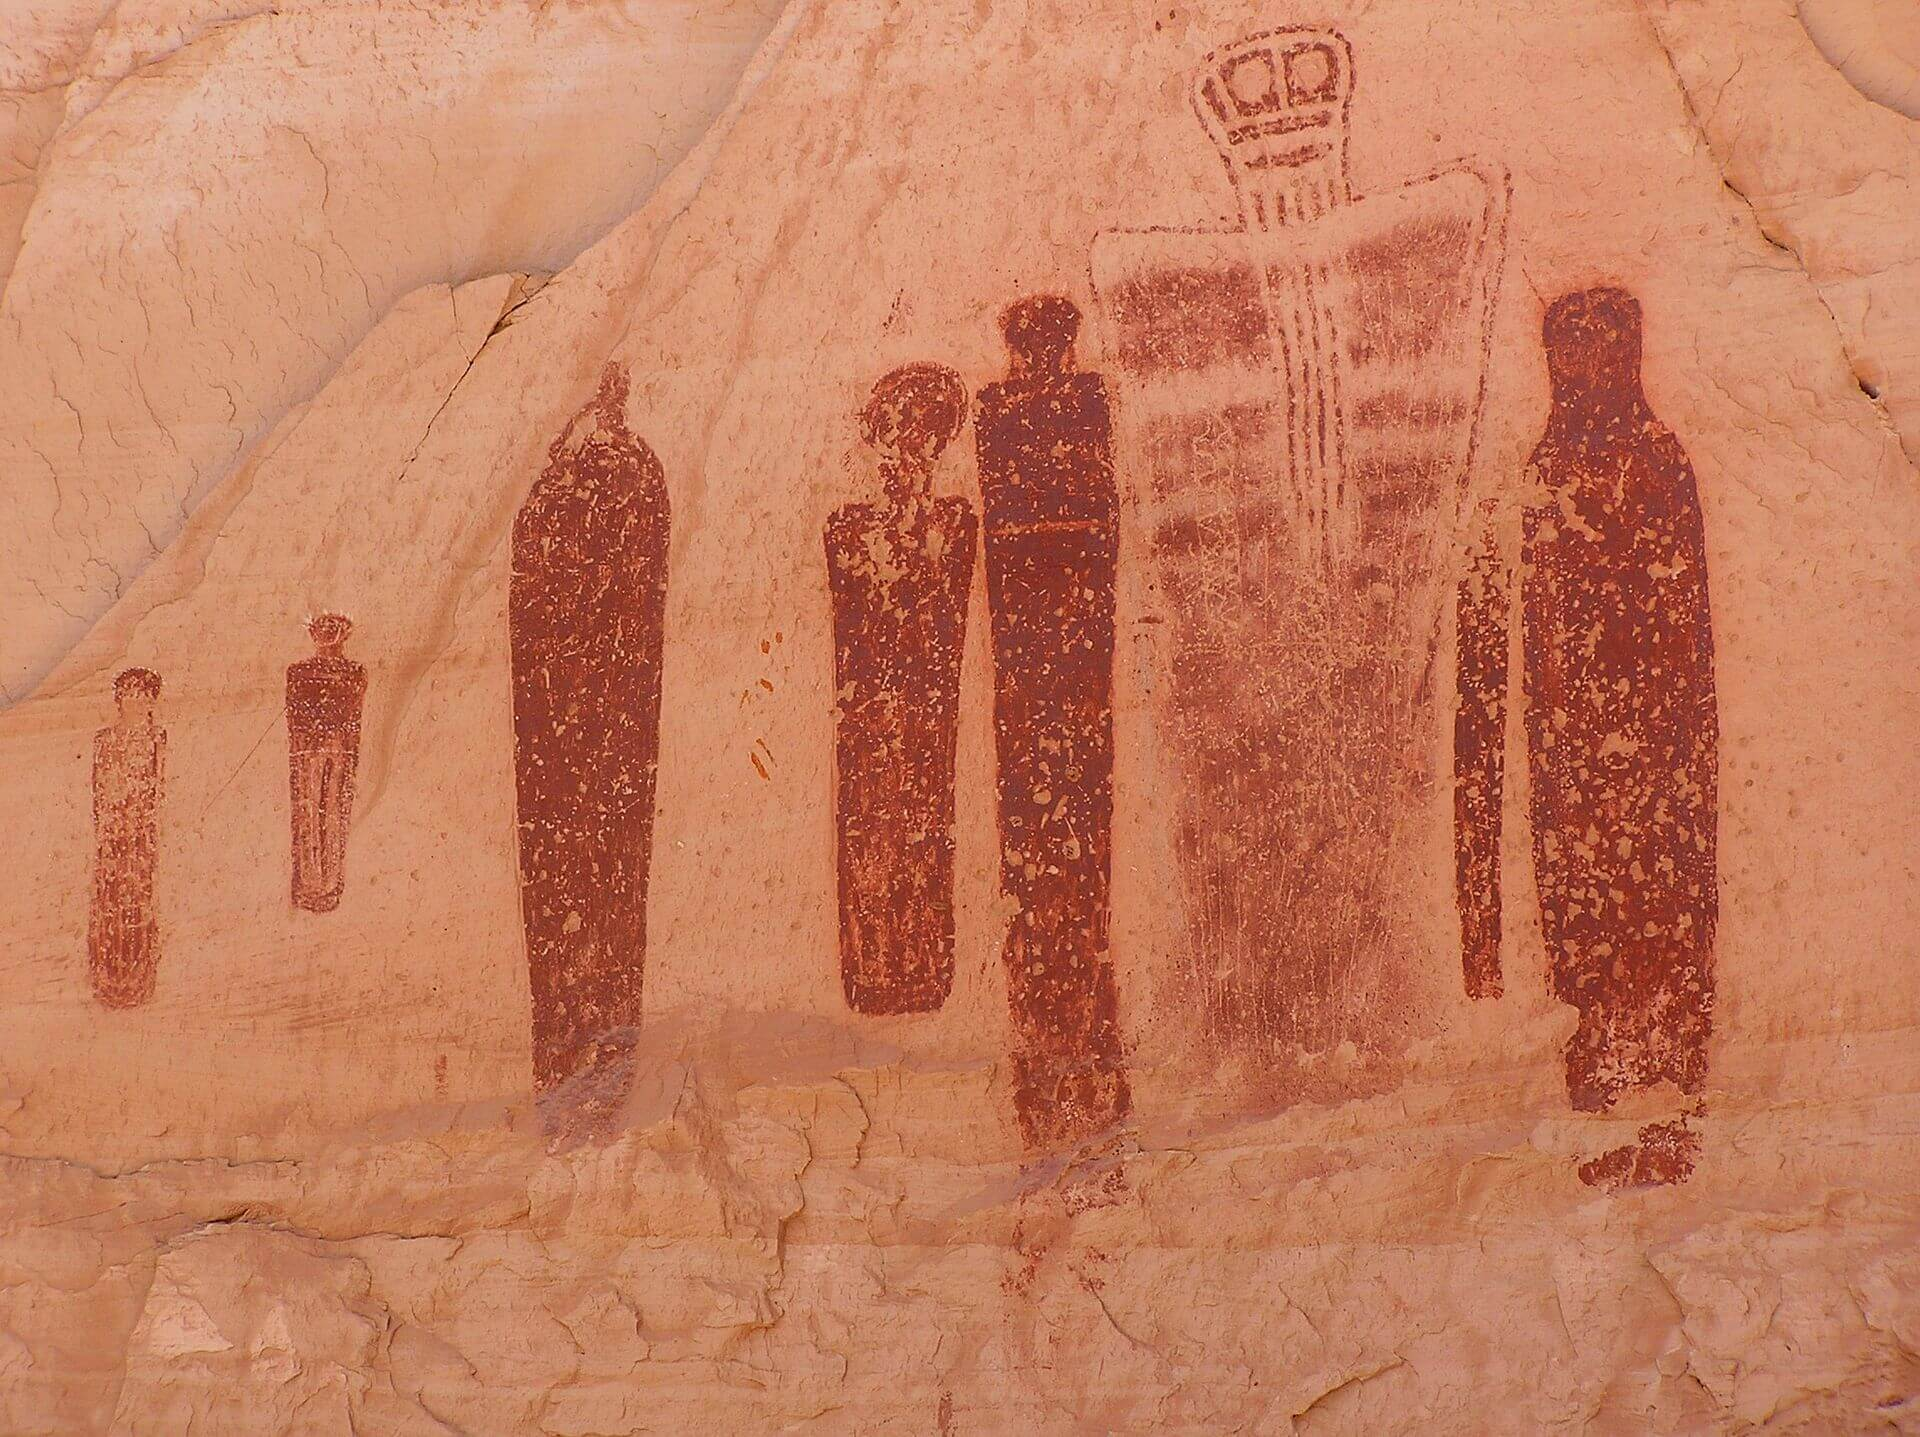 This portion of the Great Gallery, found in Horseshoe Canyon, is an example of a Barrier Canyon Style pictograph (painted rock art). The full panel is 200 feet long, 15 feet high and the paintings are life-sized human figures. The largest figure pictured is about 7 feet tall. Horseshoe Canyon, also known as Barrier Canyon, is a detached part of Canyonlands National Park in Utah, west of the Green River, and north of the National Park's Maze unit. (Image via wikimedia commons user Scott Catron, used under a CC BY-SA 3.0 license.)